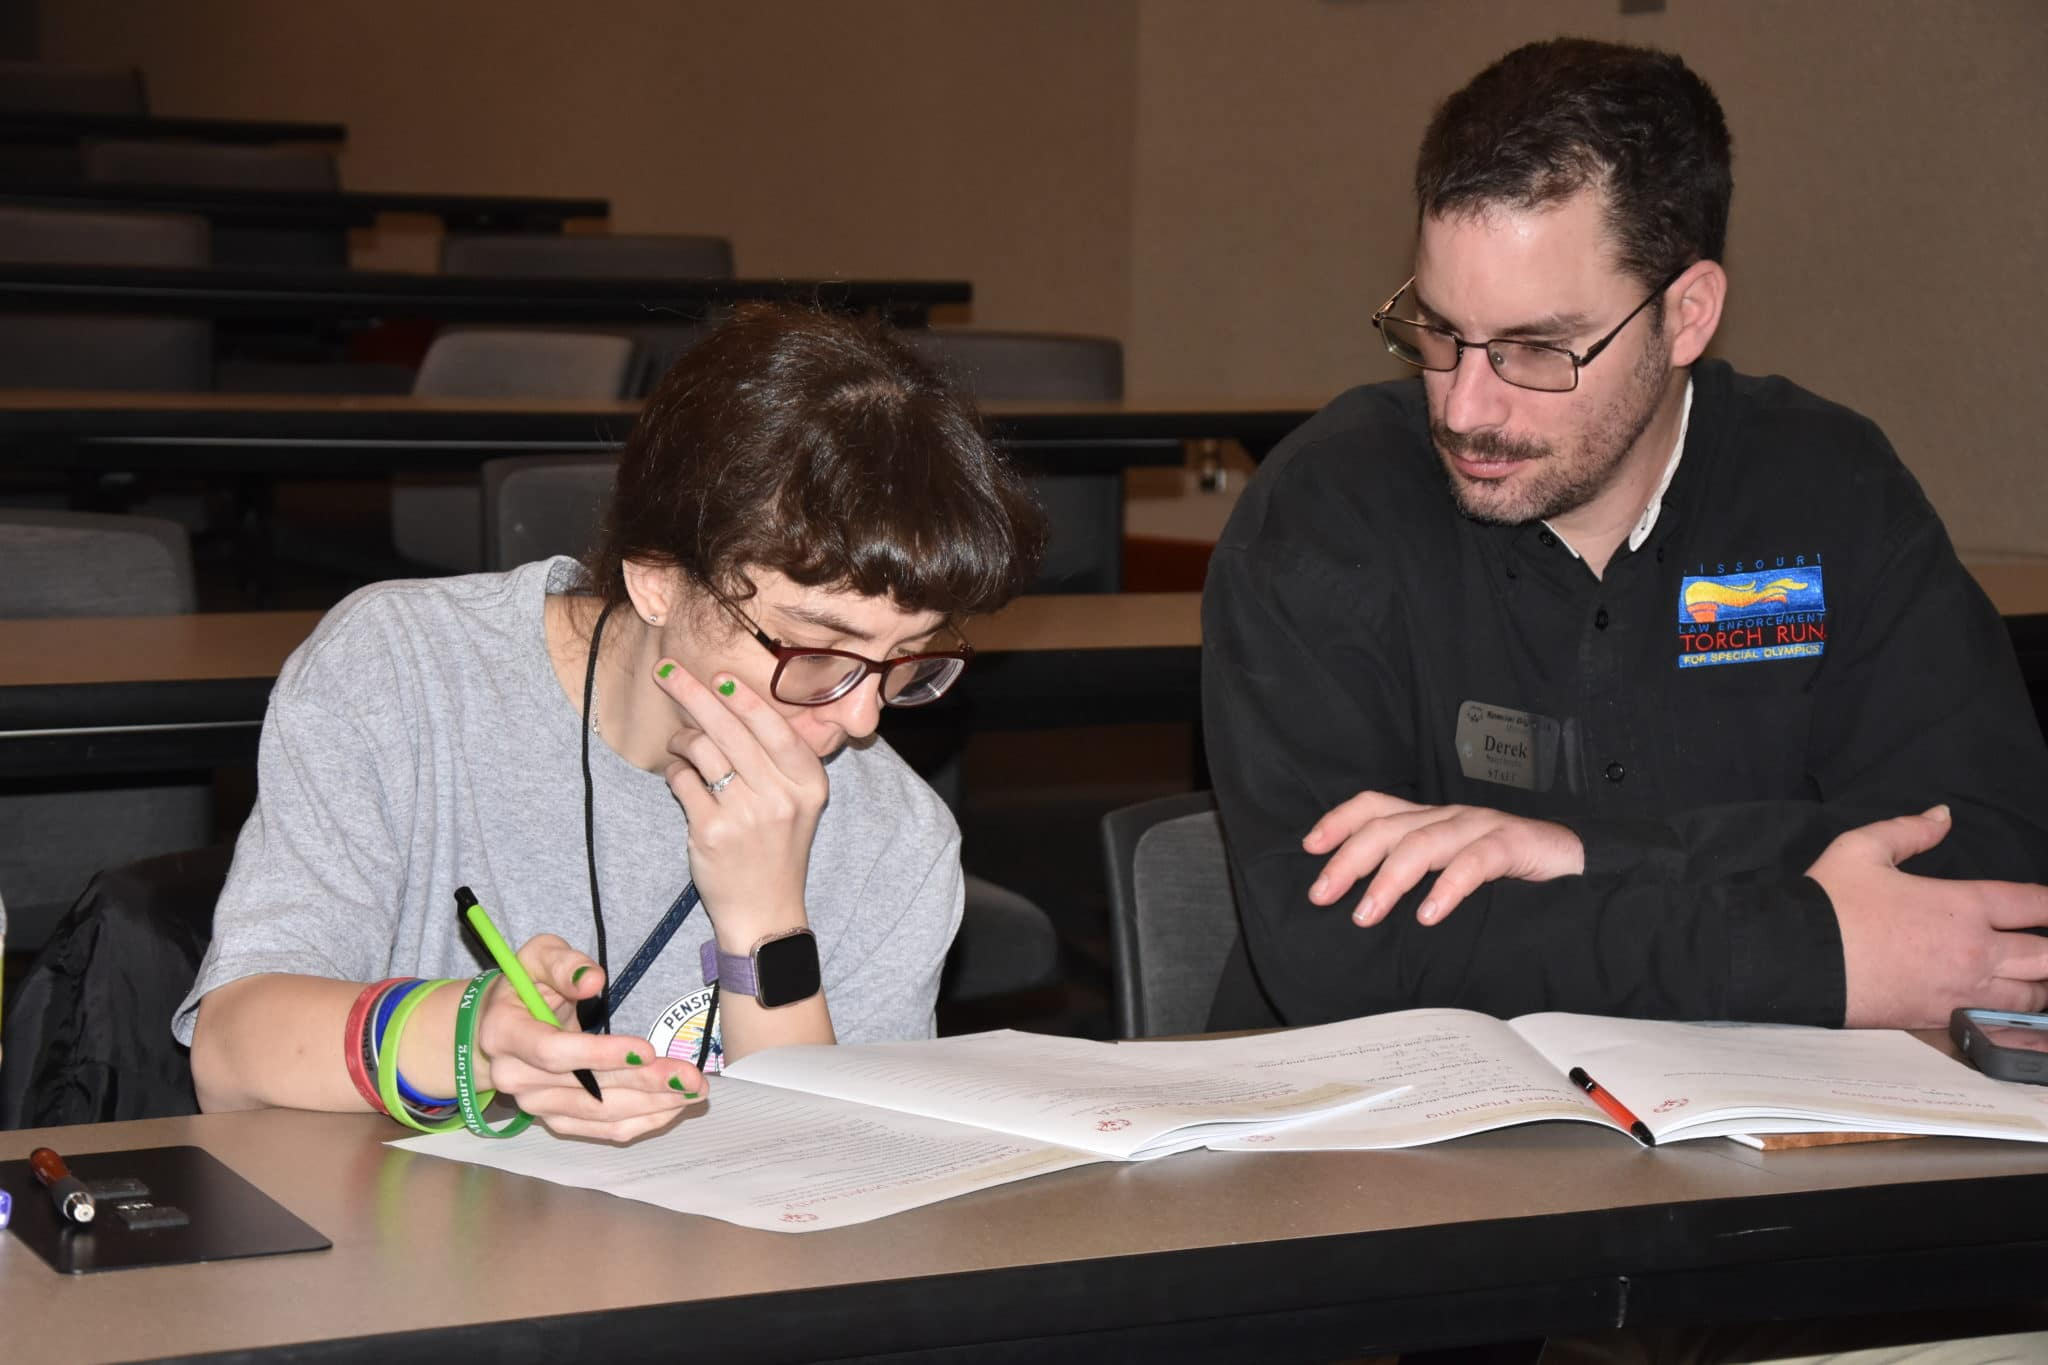 An instructor watches over an athlete-leader as they write a speech